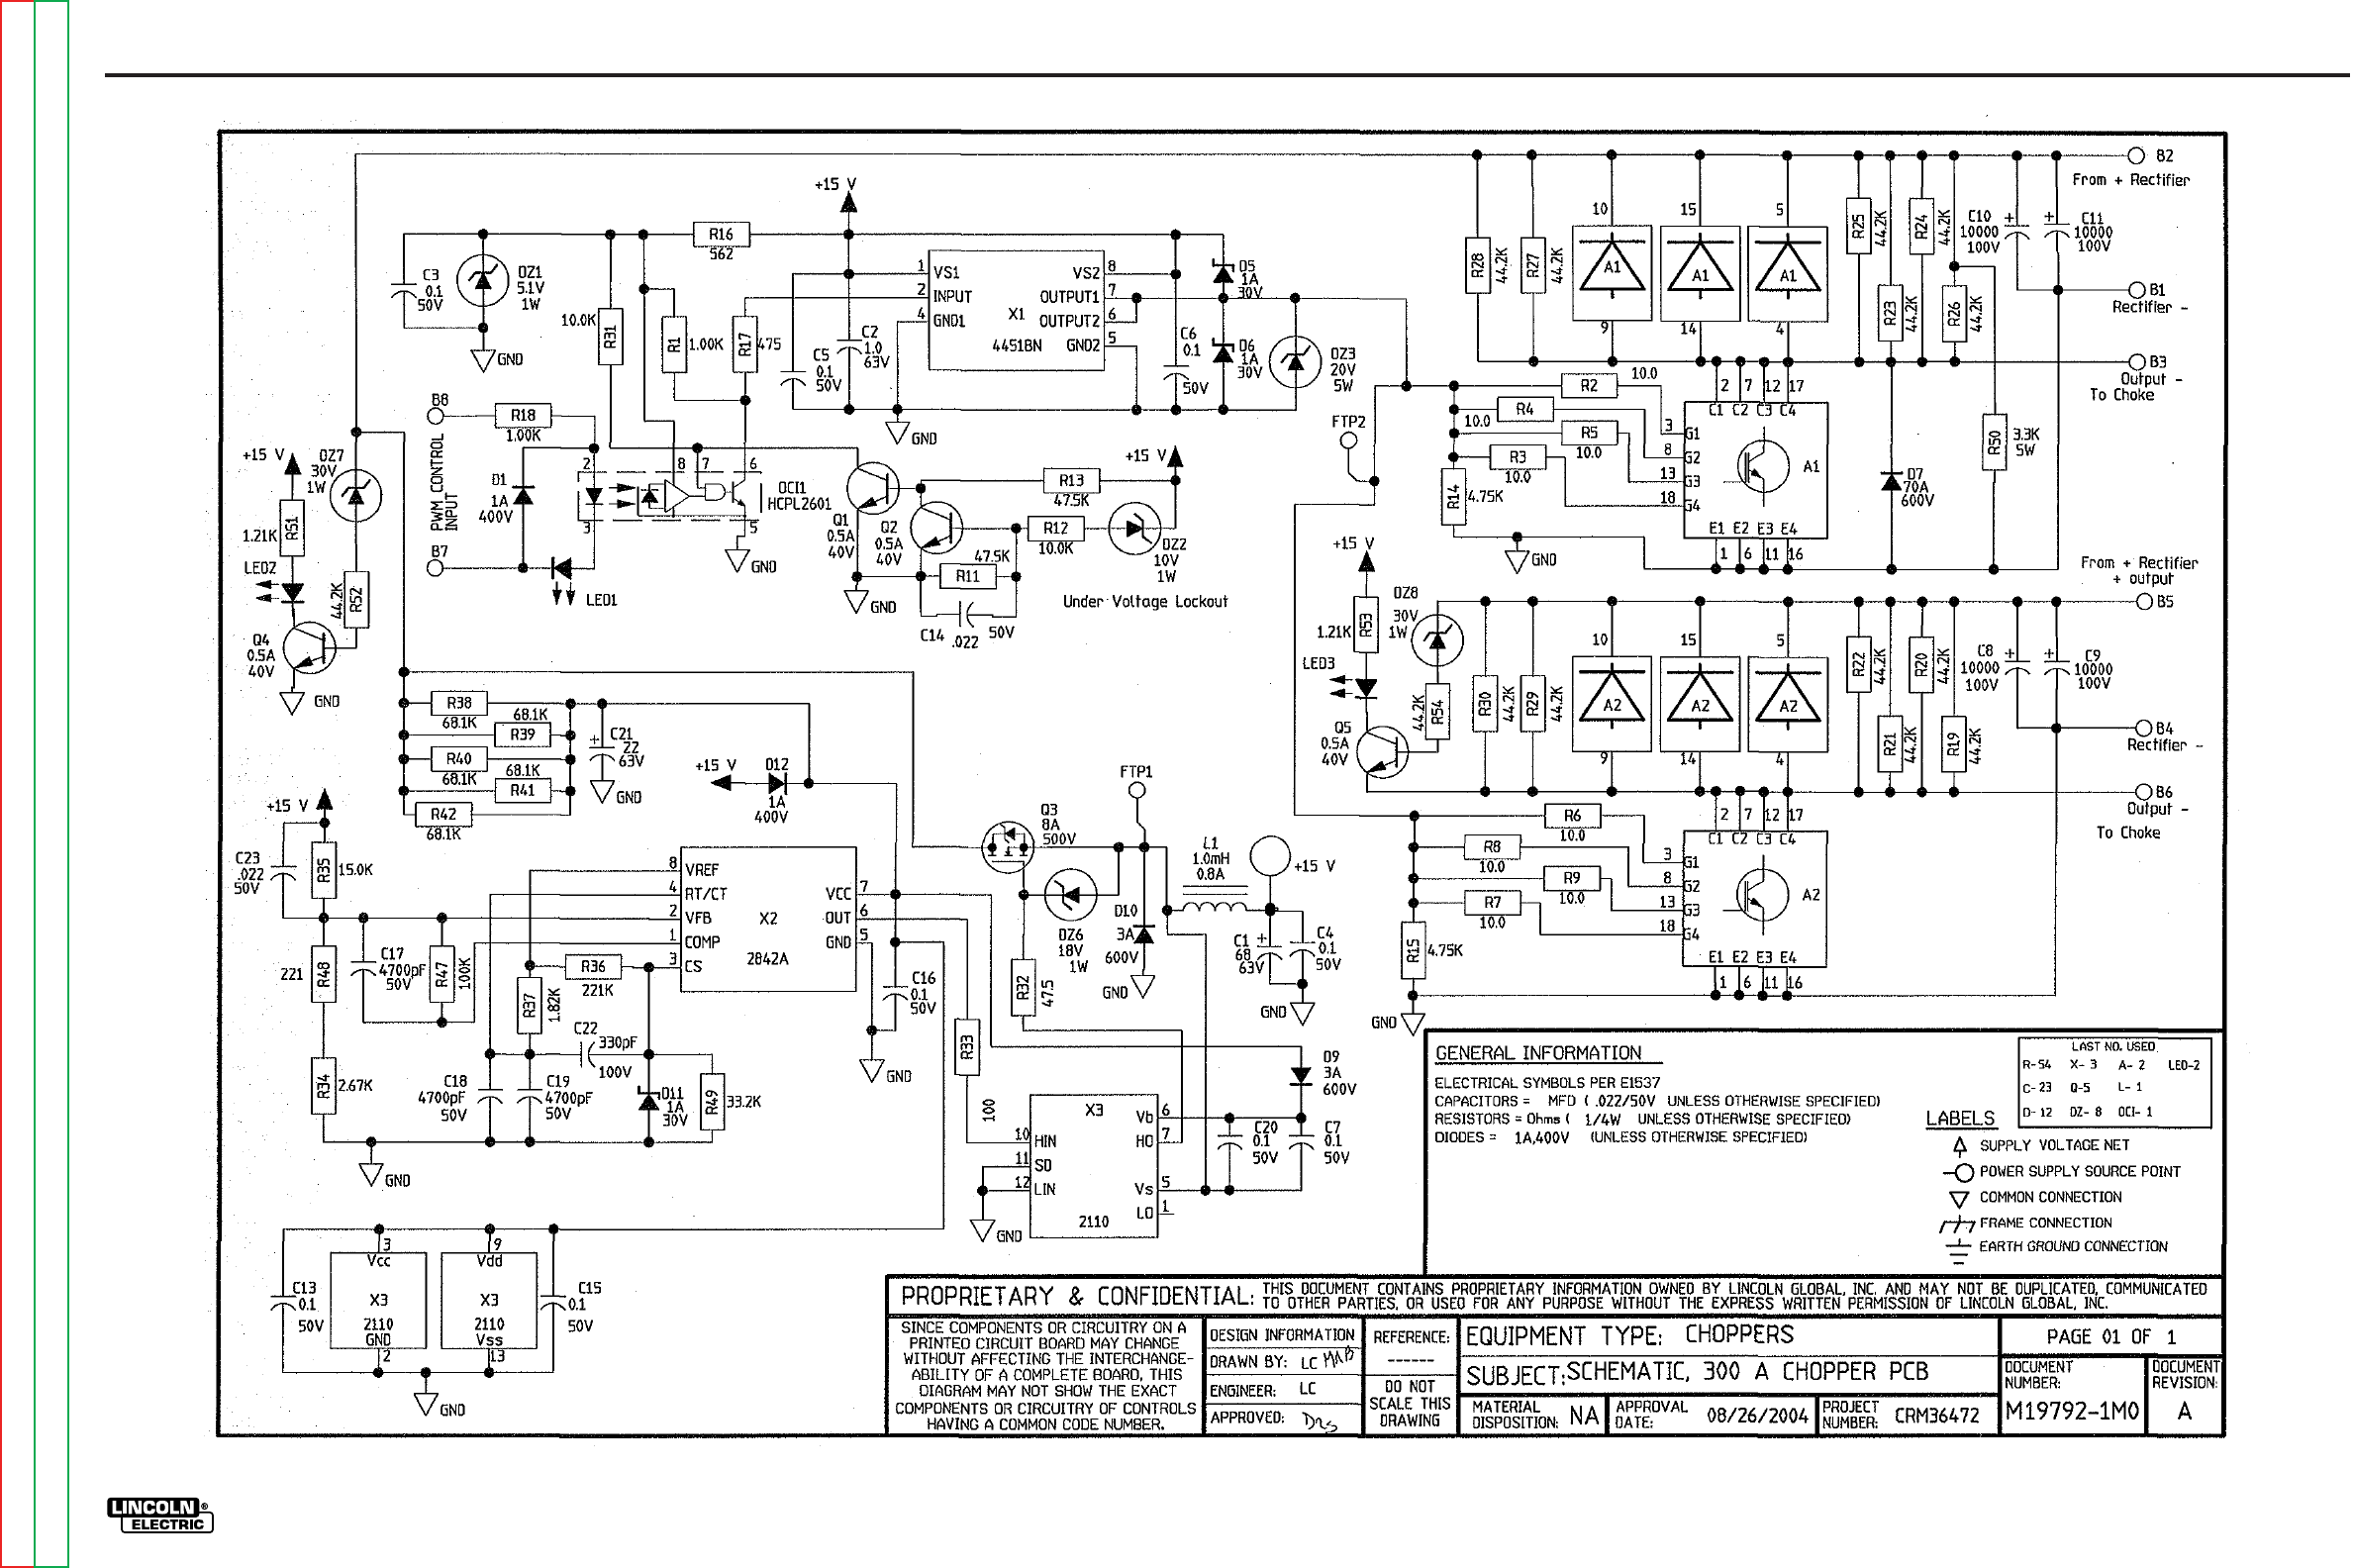 chopper wiring diagram with Svm175a on Gm 3 Wire Alternator Wiring Diagram in addition Showthread together with General Wire Spring Mini Rooter in addition Technical tips body 2 together with Troy Bilt Wiring Harness.